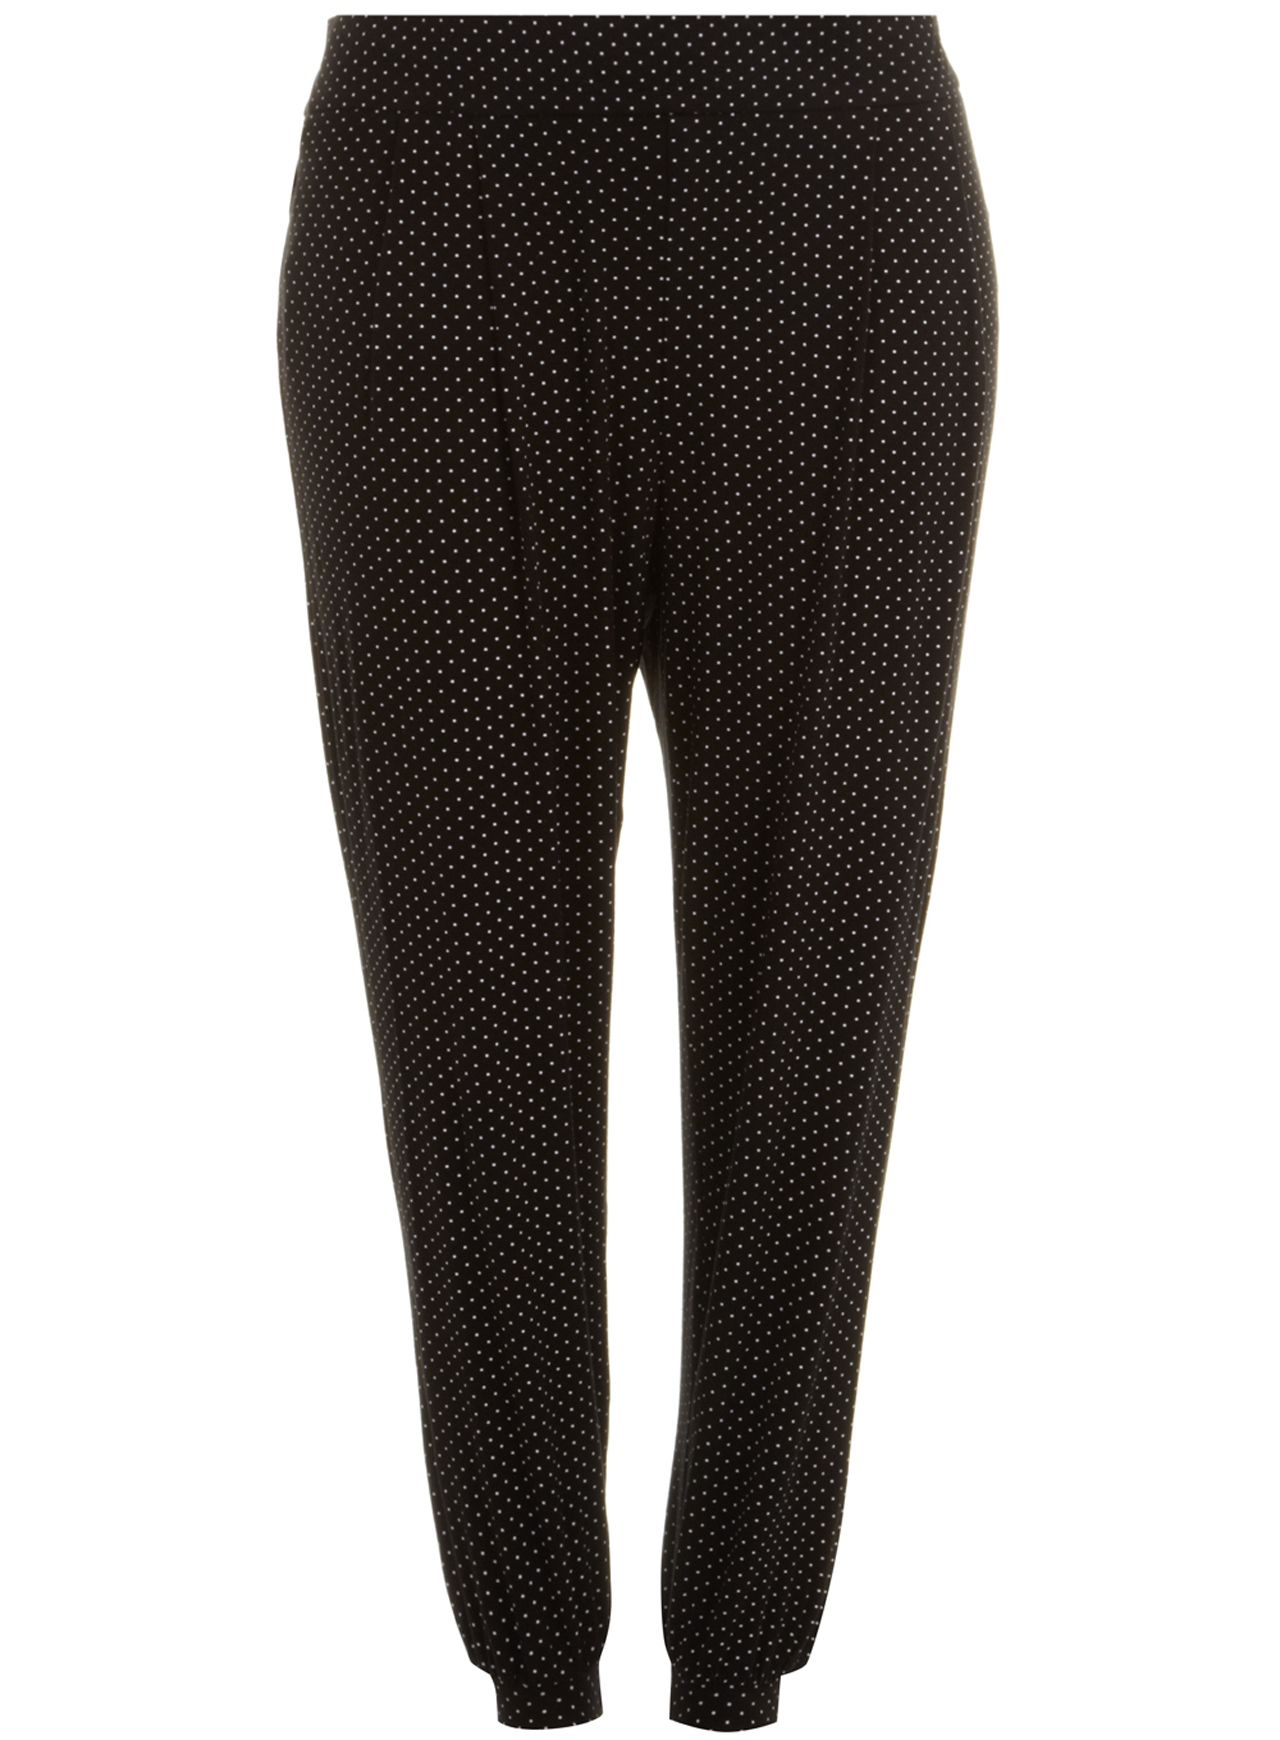 Spot print jersey tapered trouser